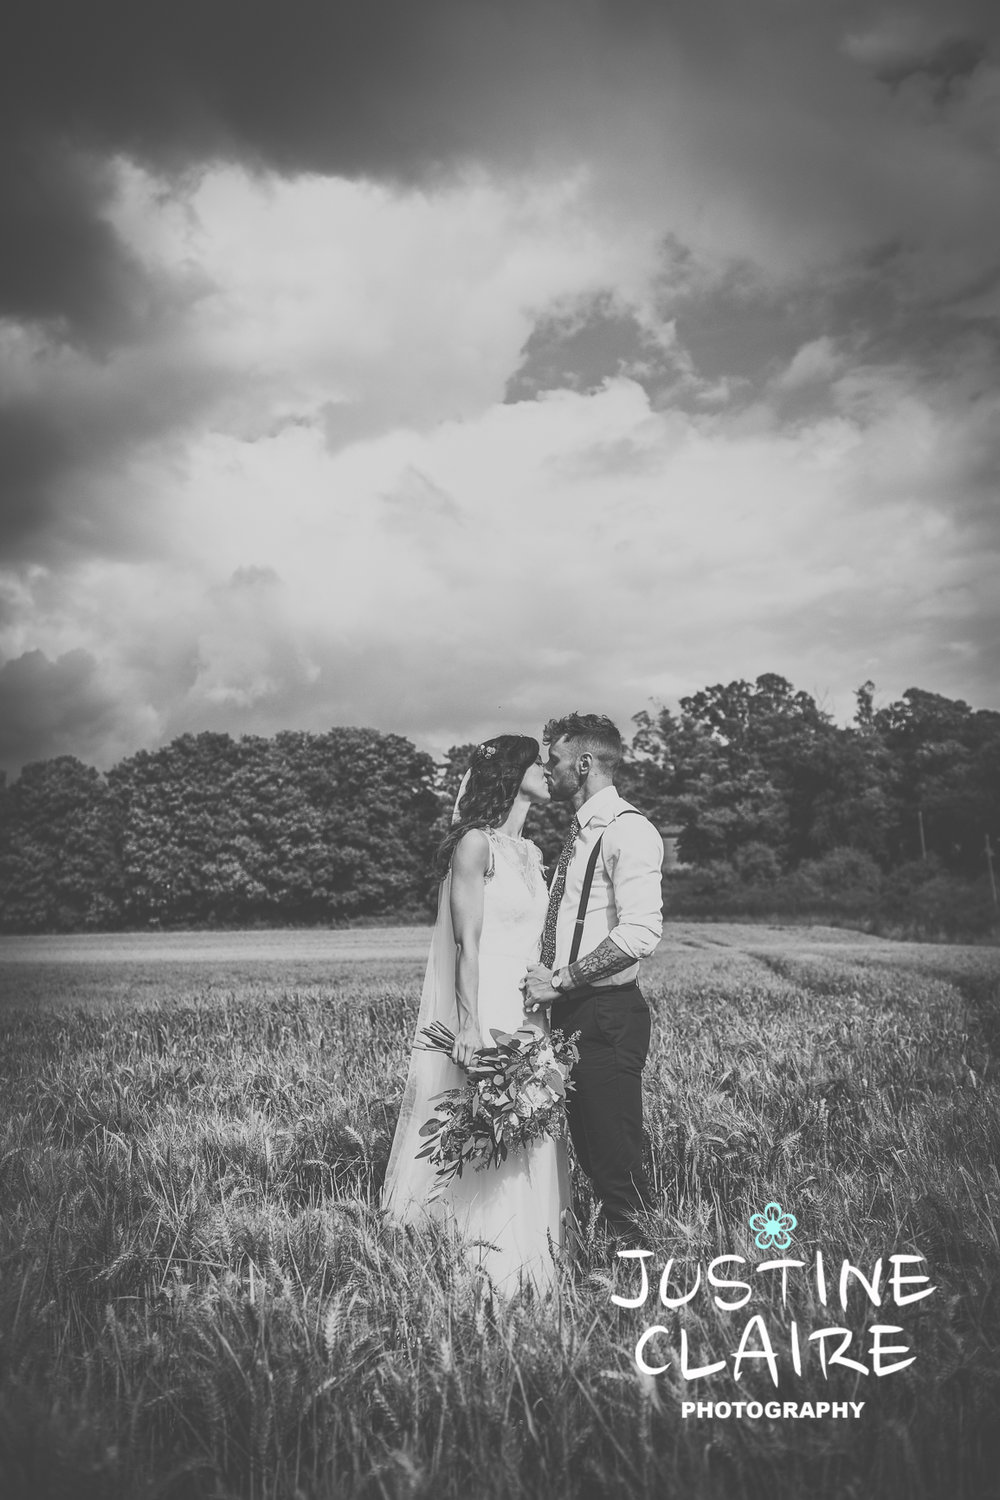 Farbridge Wedding Photographers Justine Claire Photography Chichester7.jpg